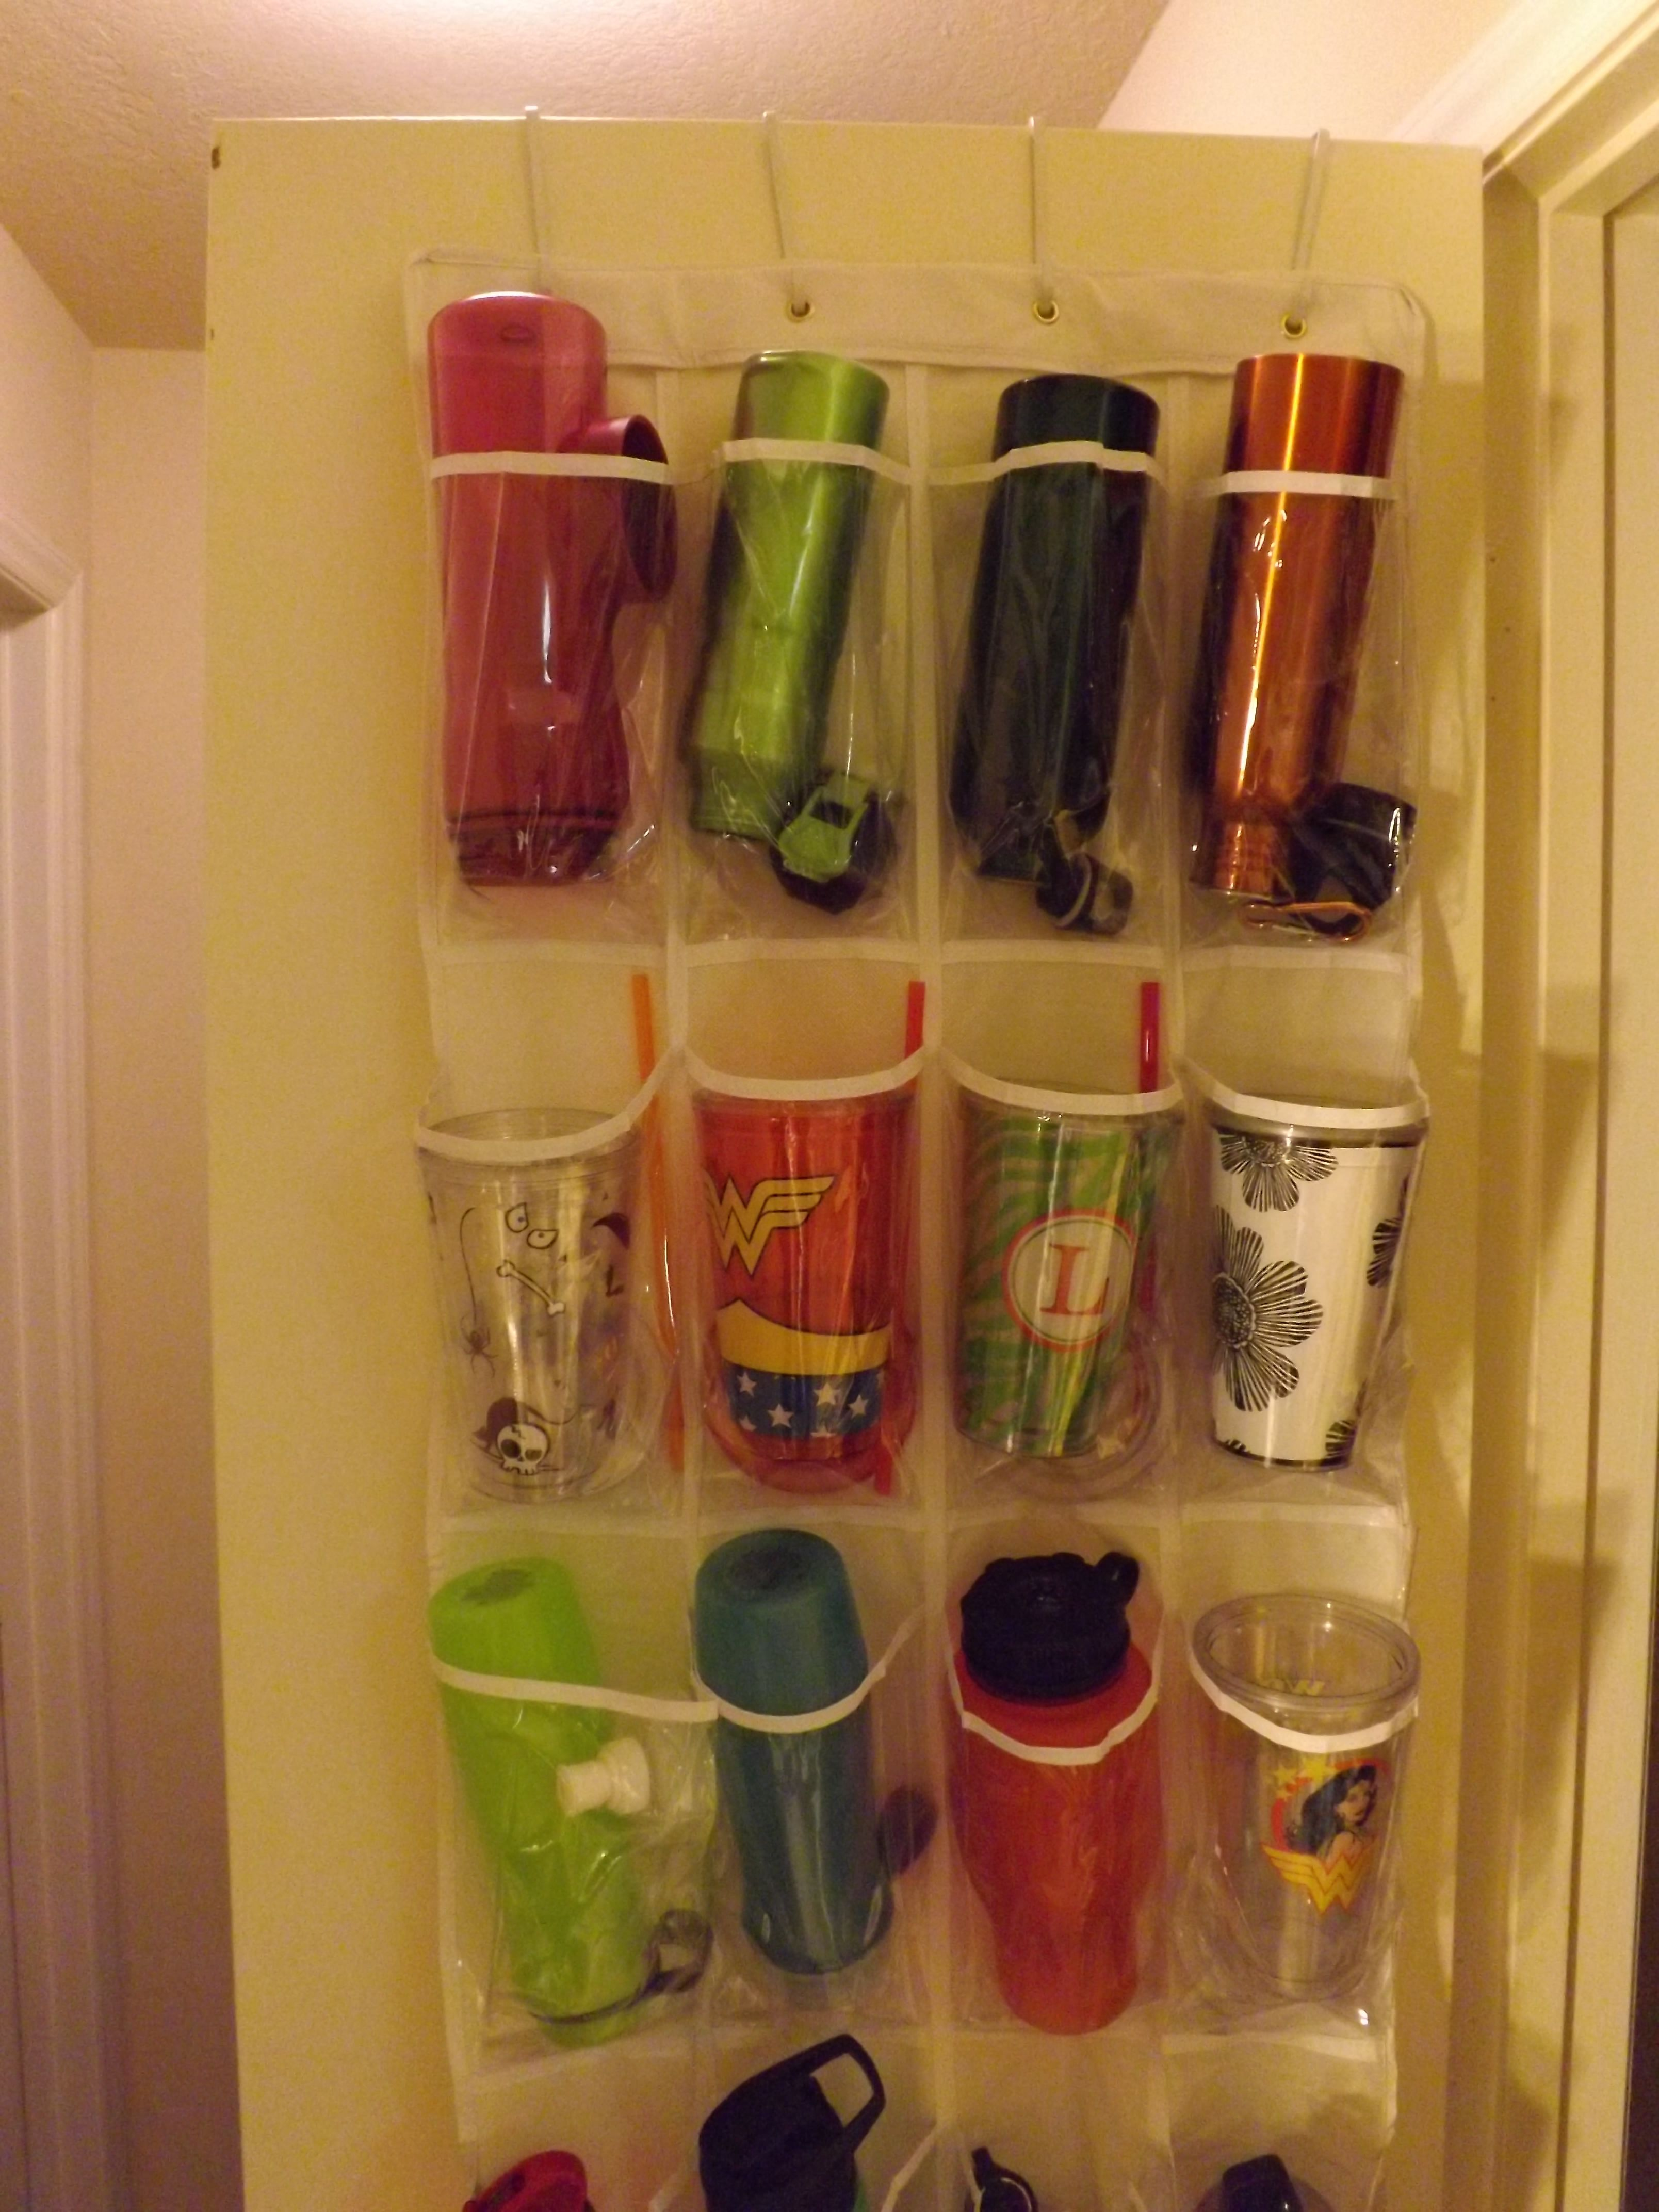 Boy Do I Ned This Use An Over The Door Shoe Organizer To Recliam